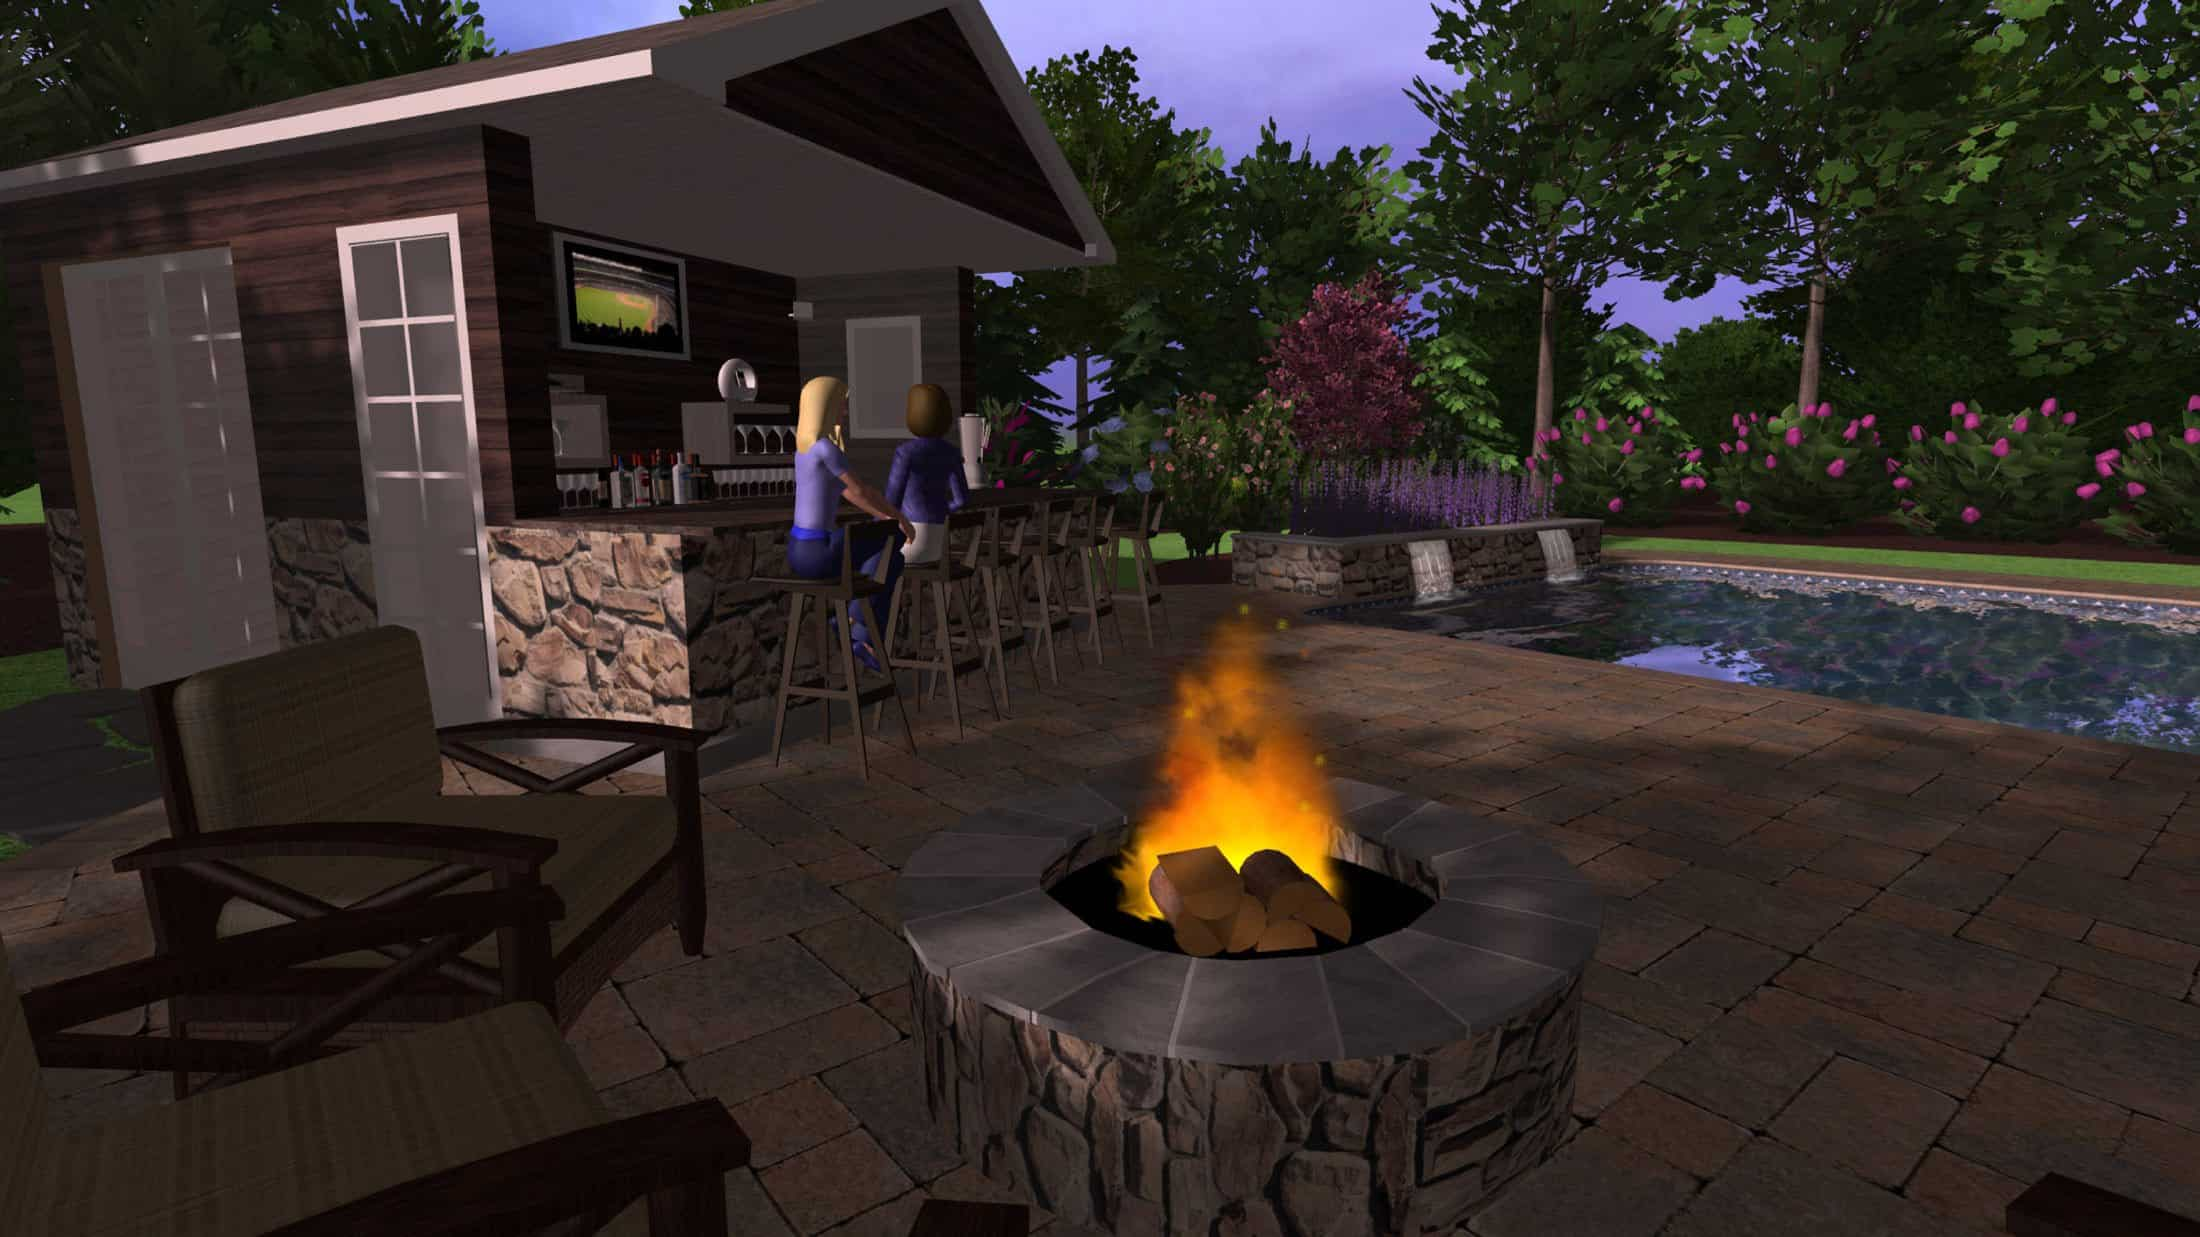 Landscape Design - Outdoor Bars & Kitchens - Long Island, NY